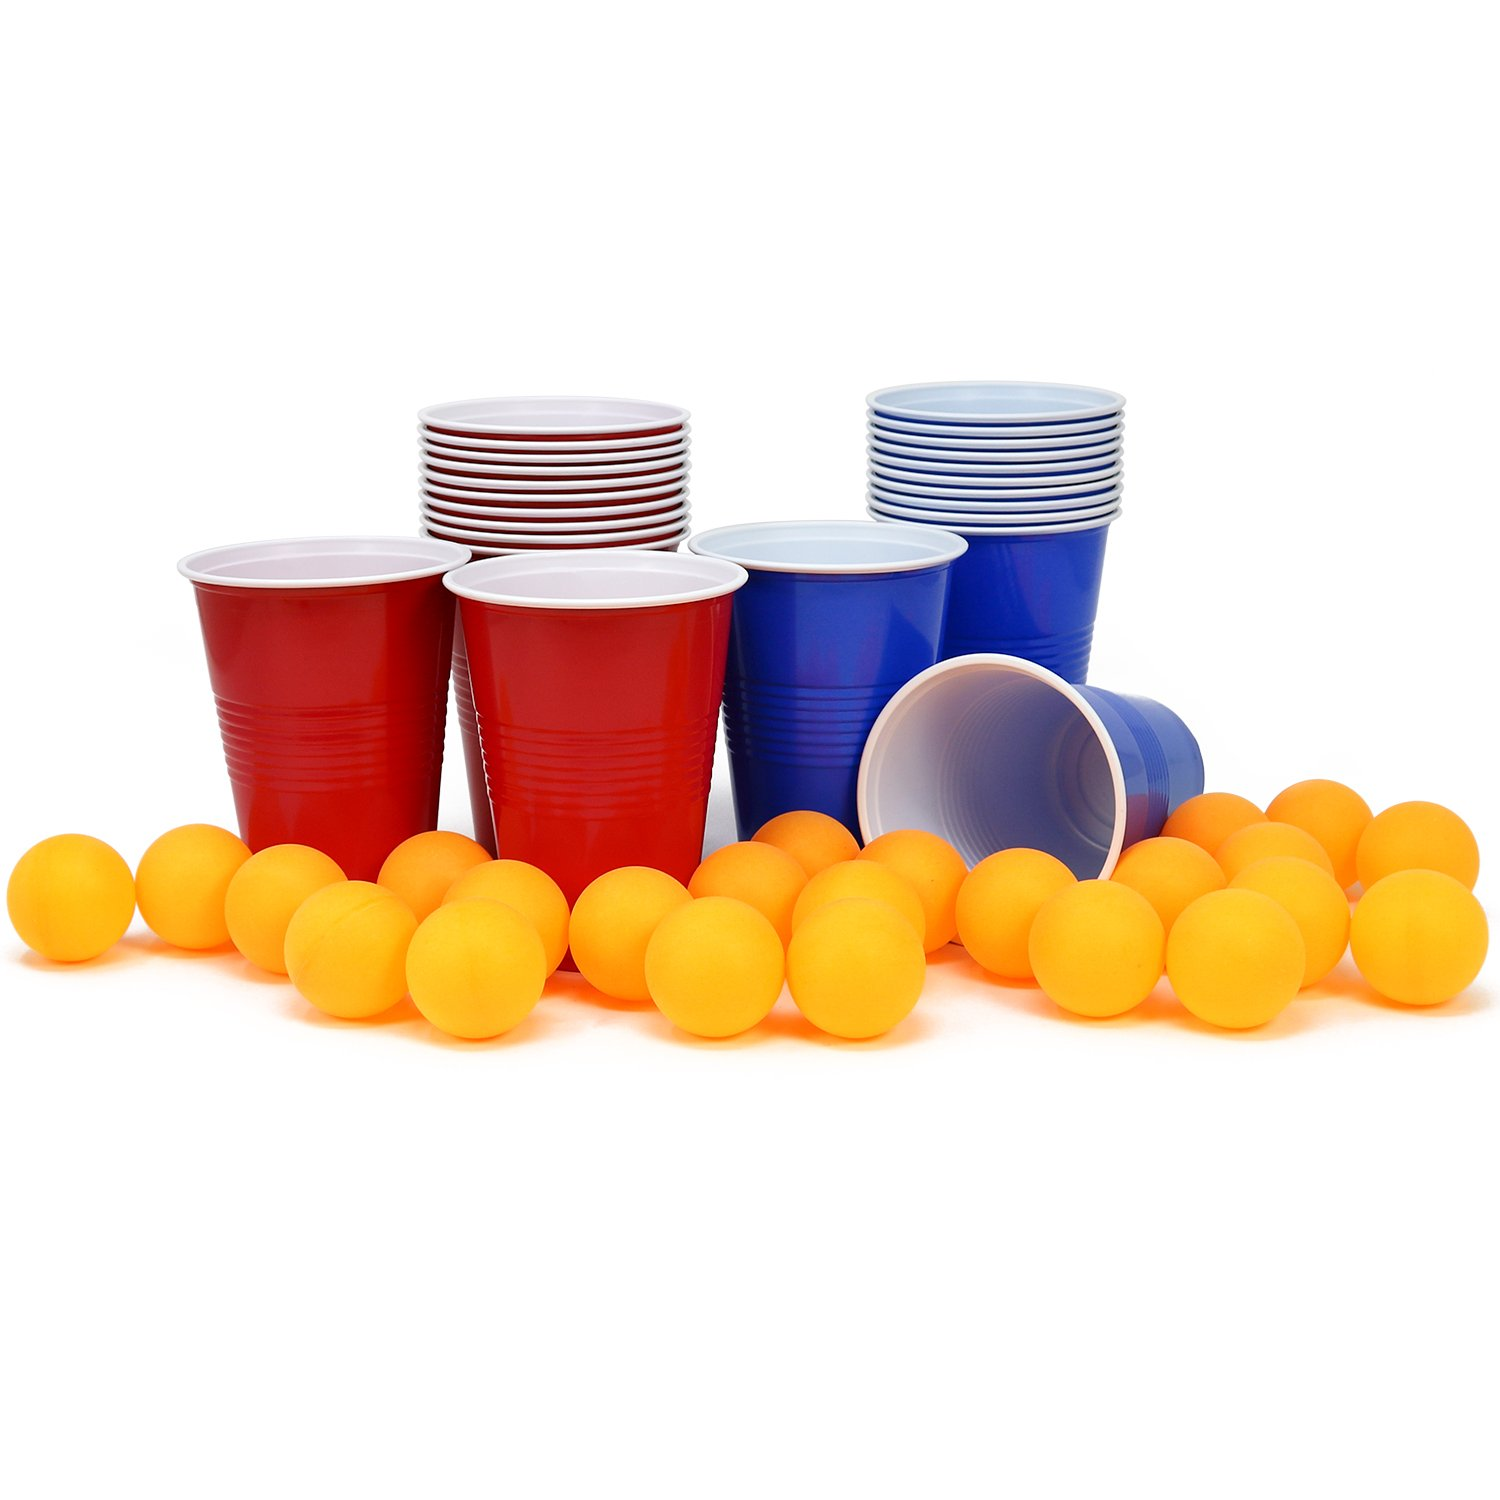 COM-FOUR 48-piece Beer Pong Set, Beer Pong drinking game with 24 cups and 24 balls (048 pieces cups + balls)